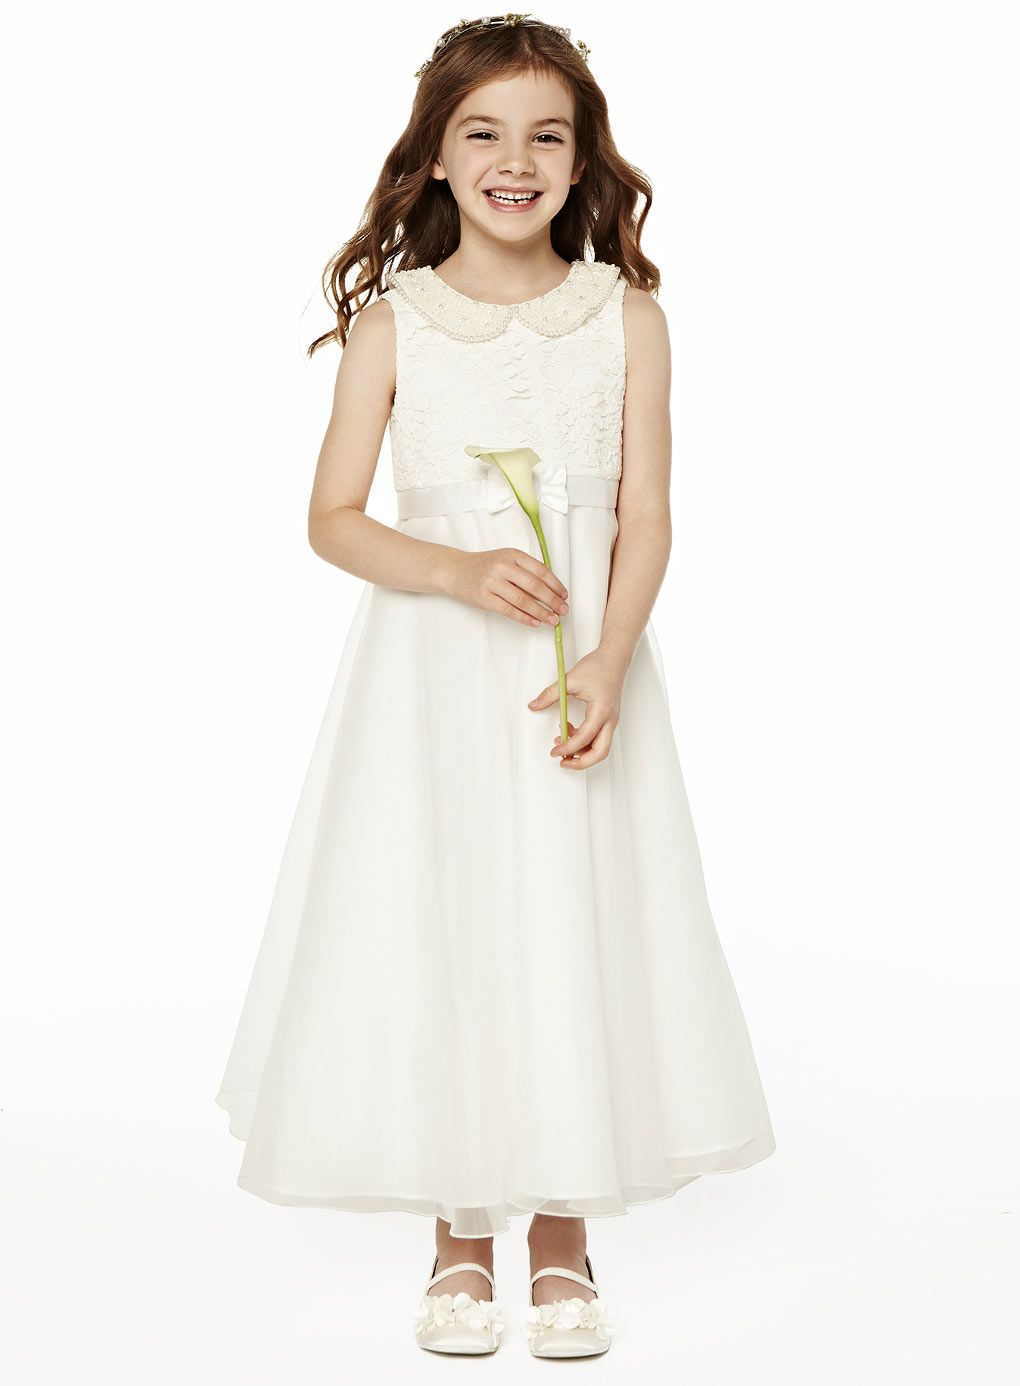 Freya ivory lace dress child dresses young bridesmaids freya ivory lace dress child dresses young bridesmaids wedding bhs ombrellifo Images